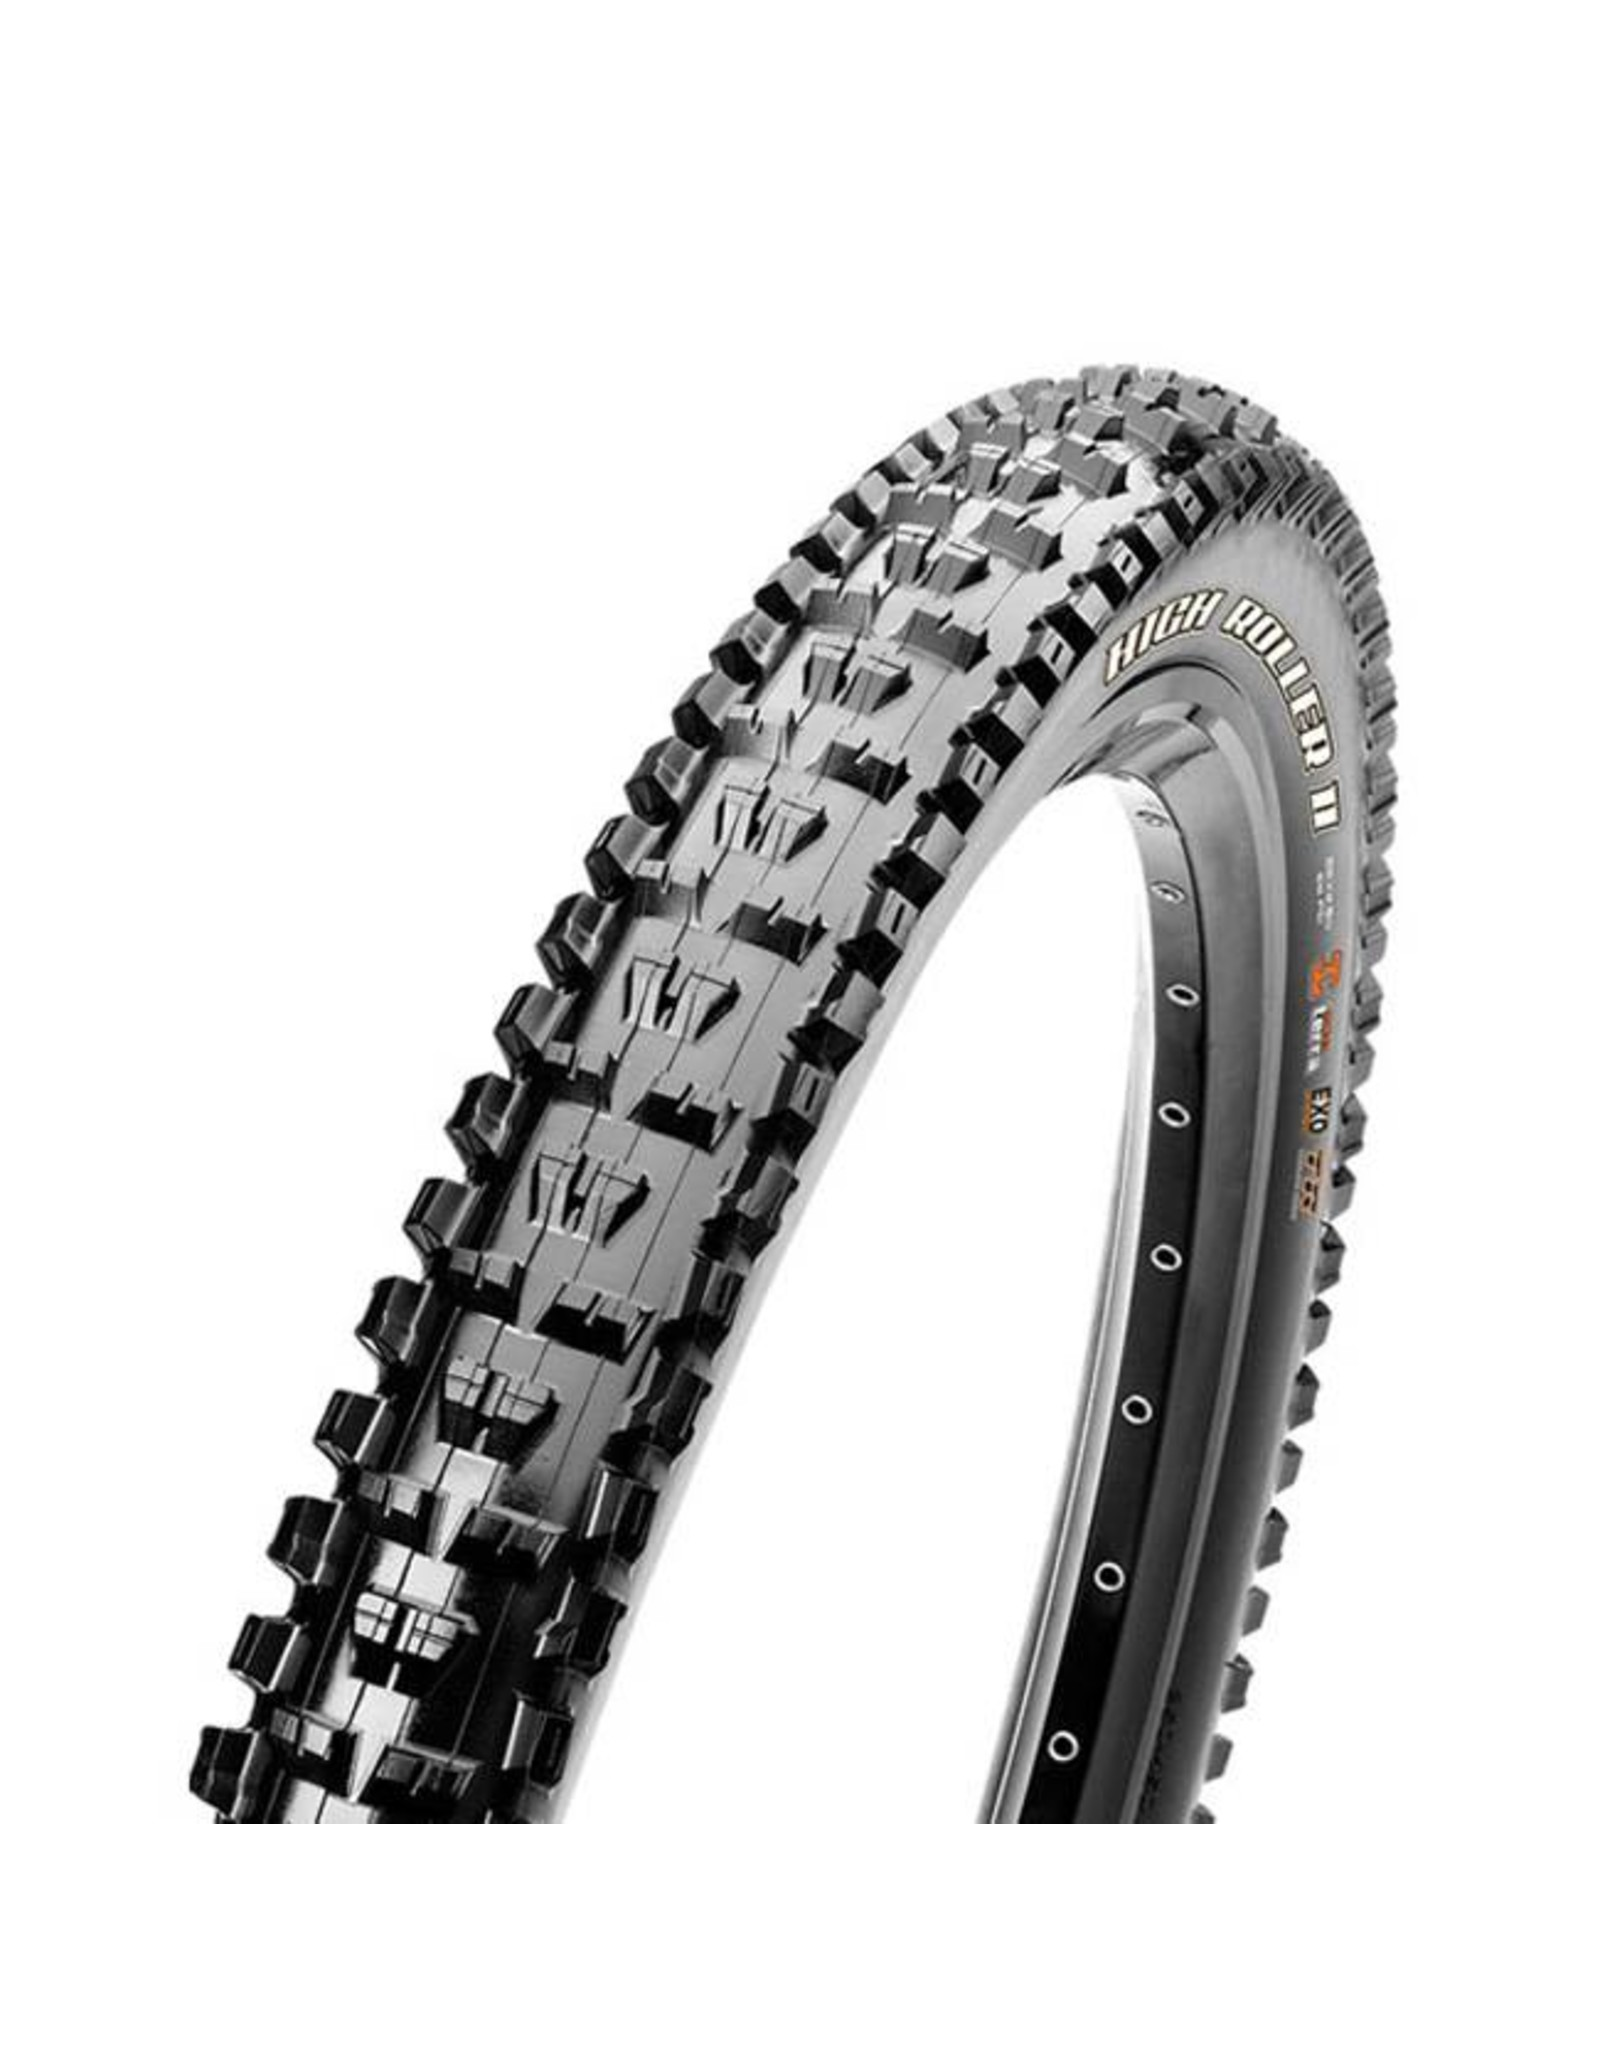 "Maxxis Maxxis High Roller II Tire: 29 x 2.50"", Folding, 120tpi, 3C MaxxTerra, Double Down, Tubeless Ready, Wide Trail, Black"